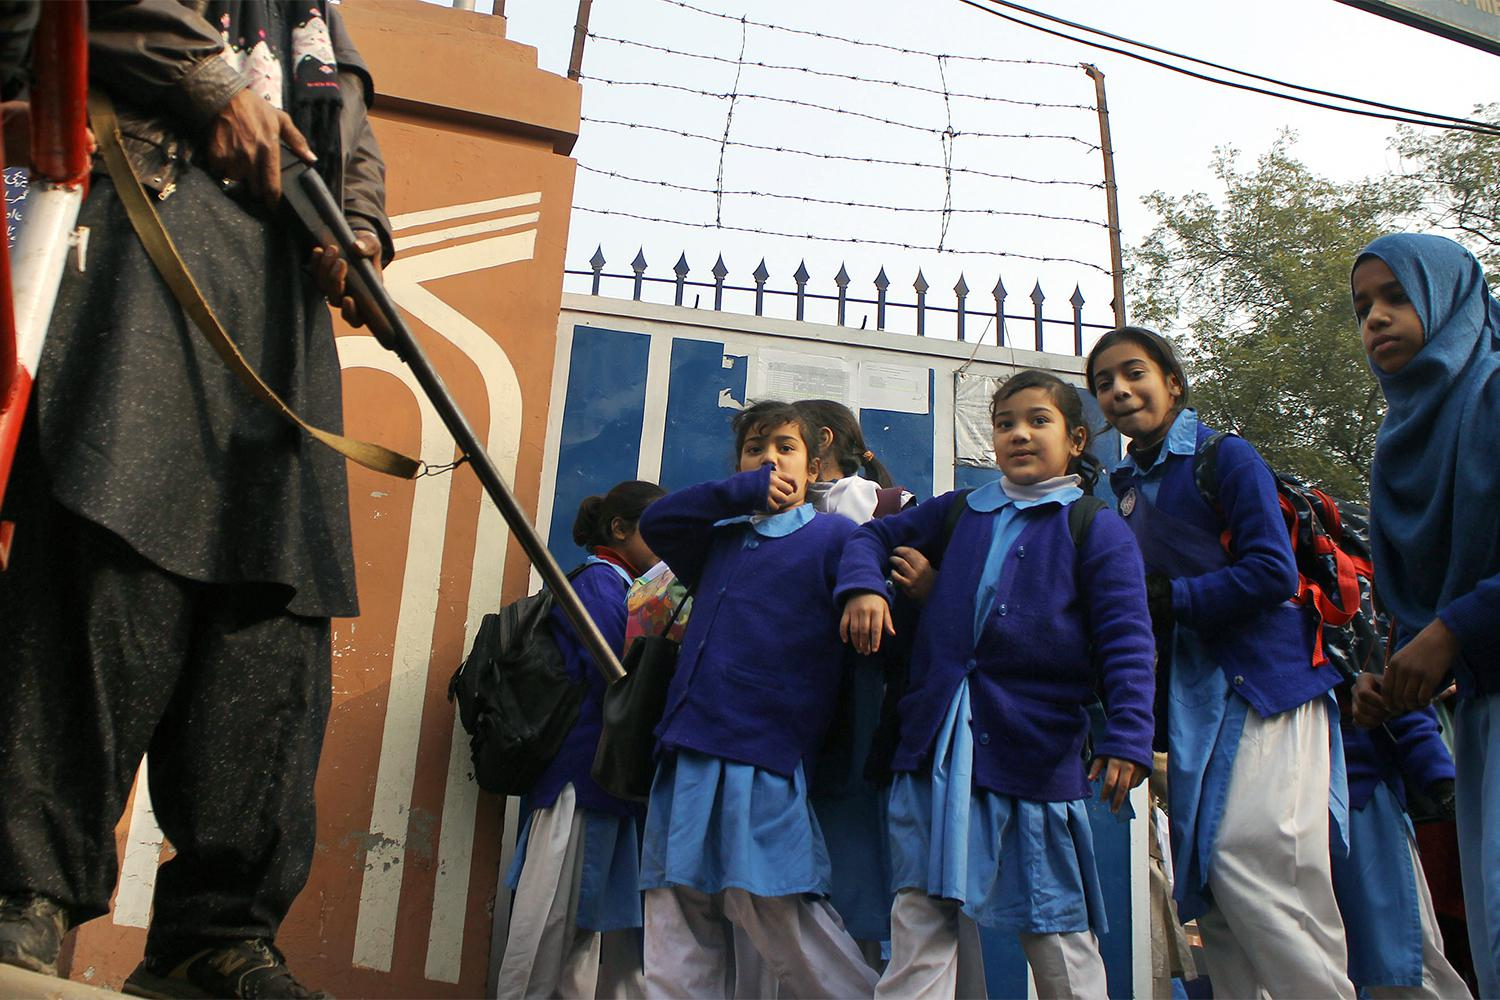 Pakistani students in Lahore return to school under high alert security after the December 16, 2014 attack by the Pakistani Taliban on the Army Public School in Peshawar, January 1, 2015.